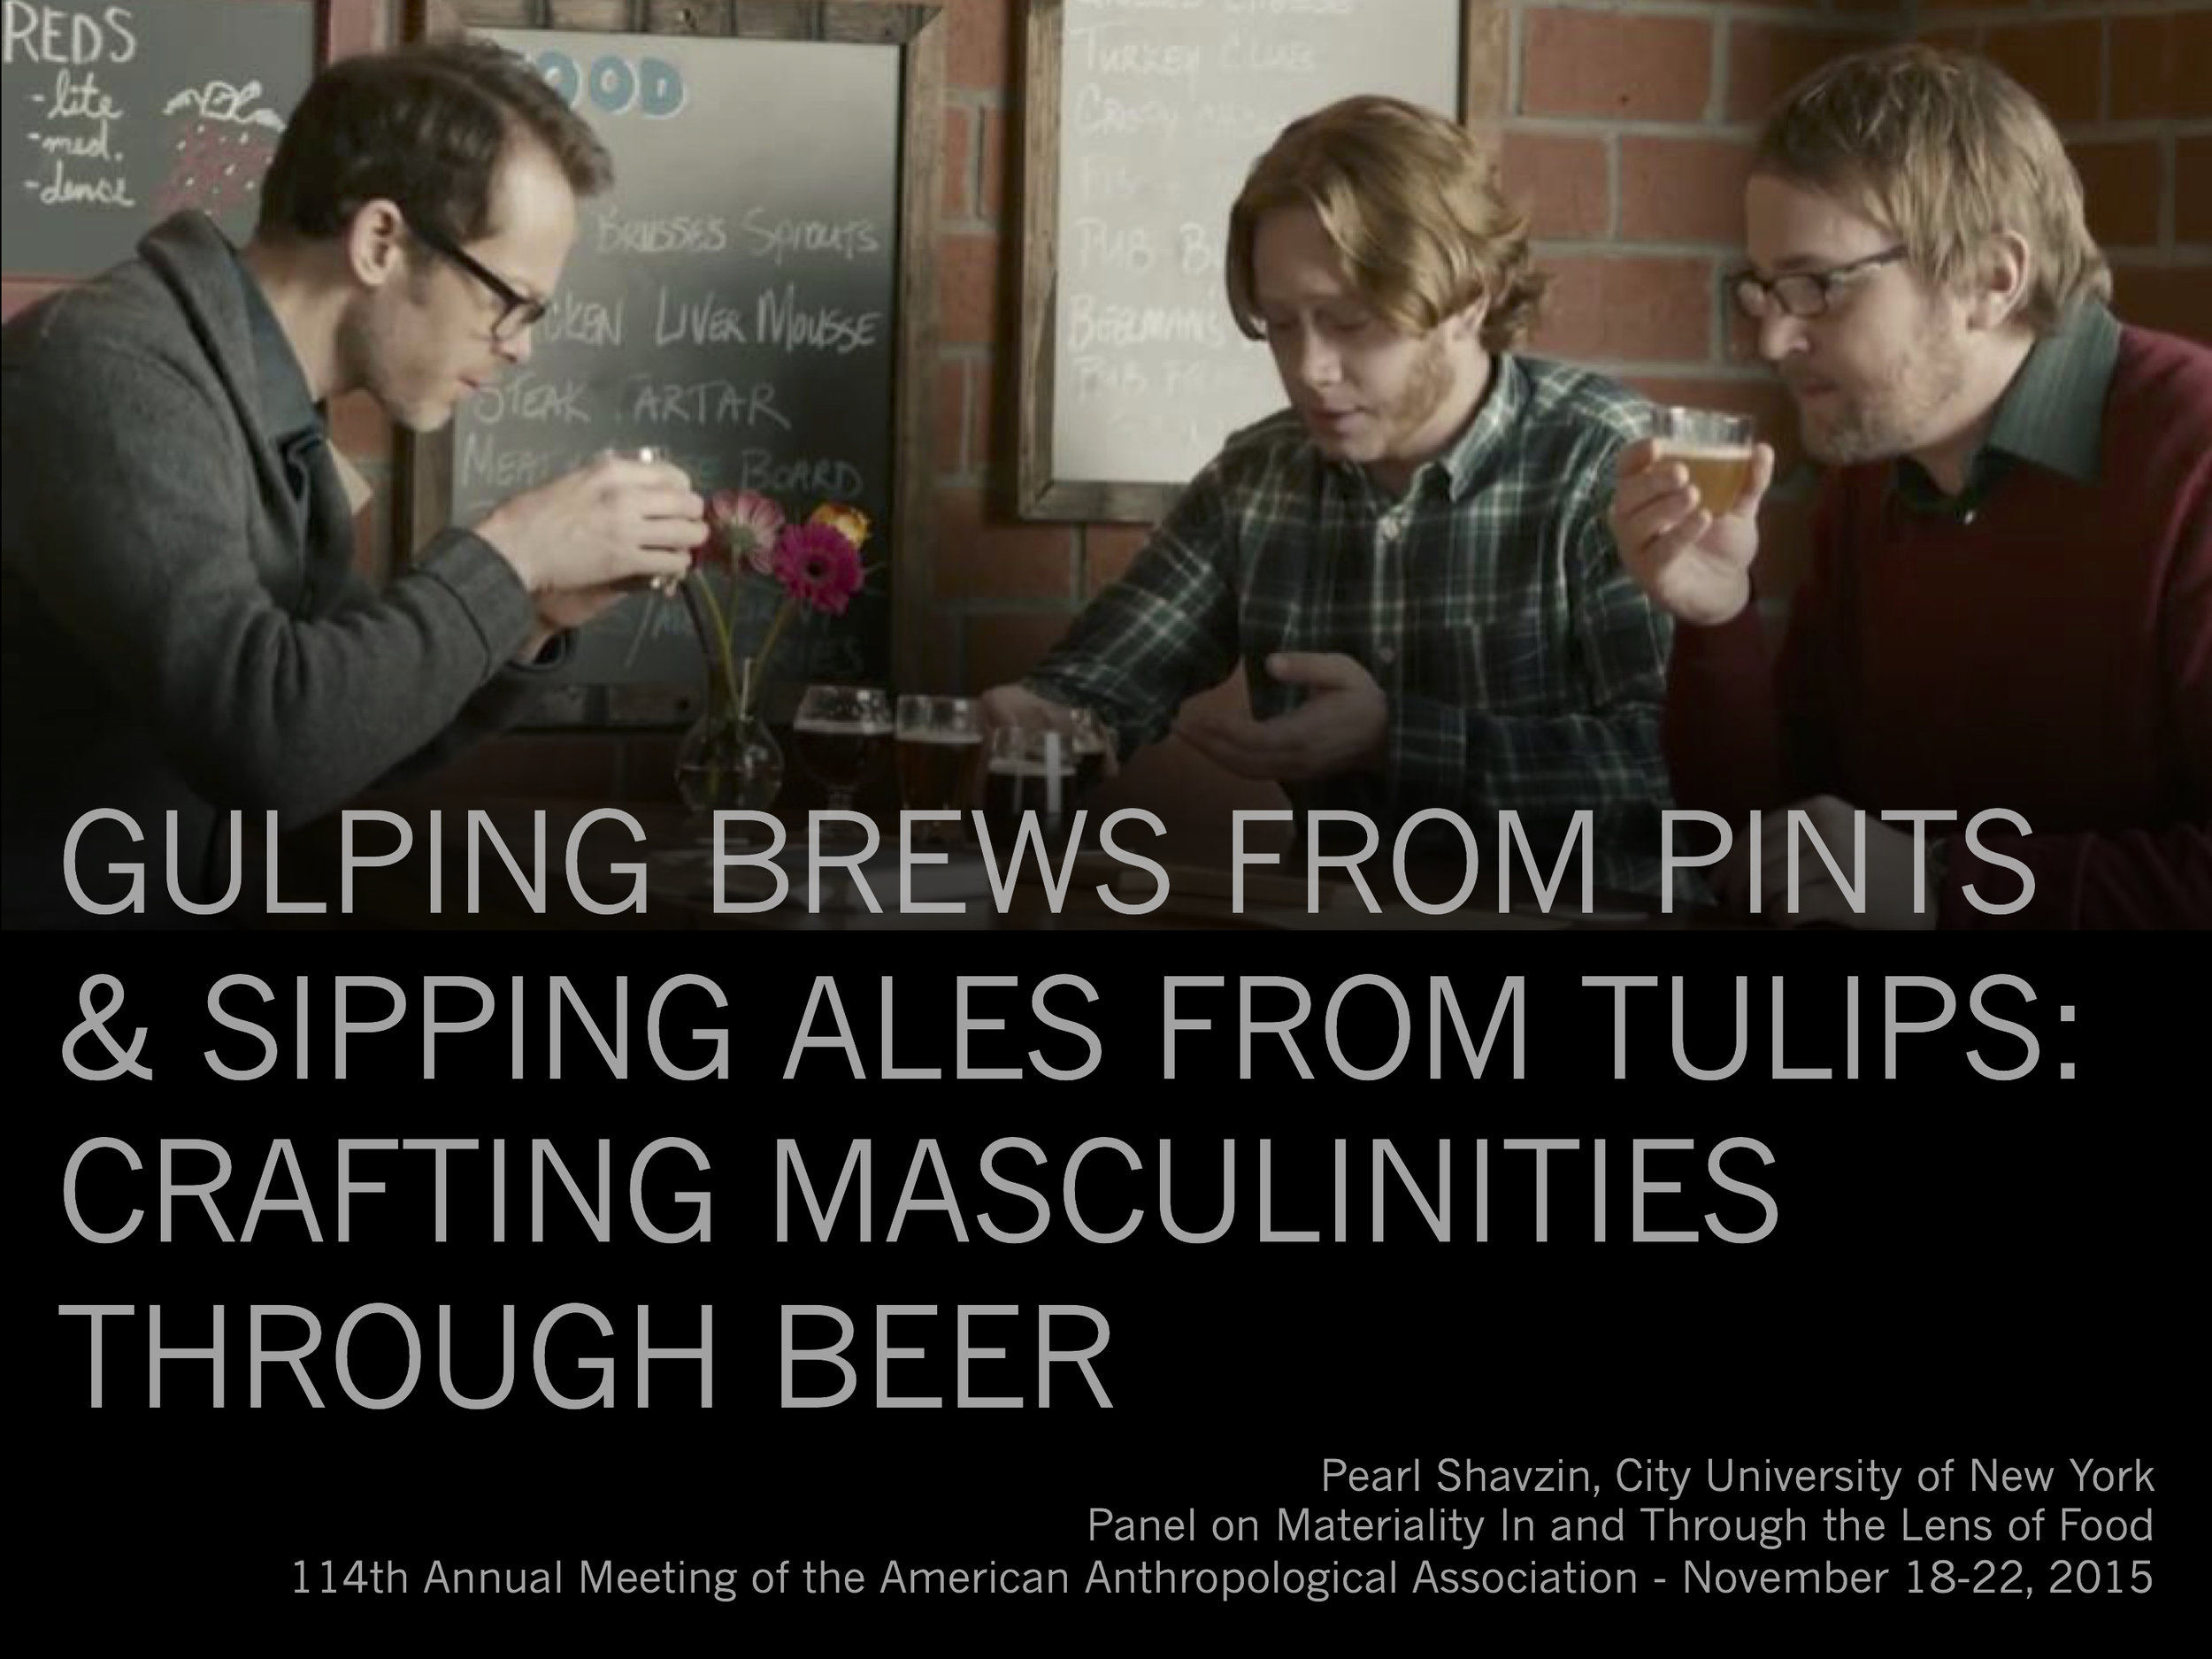 Gulping Brews From Pints & Sipping Ales From Tulips: Crafting Masculinities Through Beer - Project: Anthropology Conference Presentation on Beer and GenderProblem/Goal: A 15 minute presentation for an academic conferenceStakeholders: Members of the conference panel (other presenters and the discussant); audience (academics, students, independent scholars)Details: The presentation (and an accompanying paper) was for a panel at the American Anthropological Association's Annual Meeting in 2015. The panel,